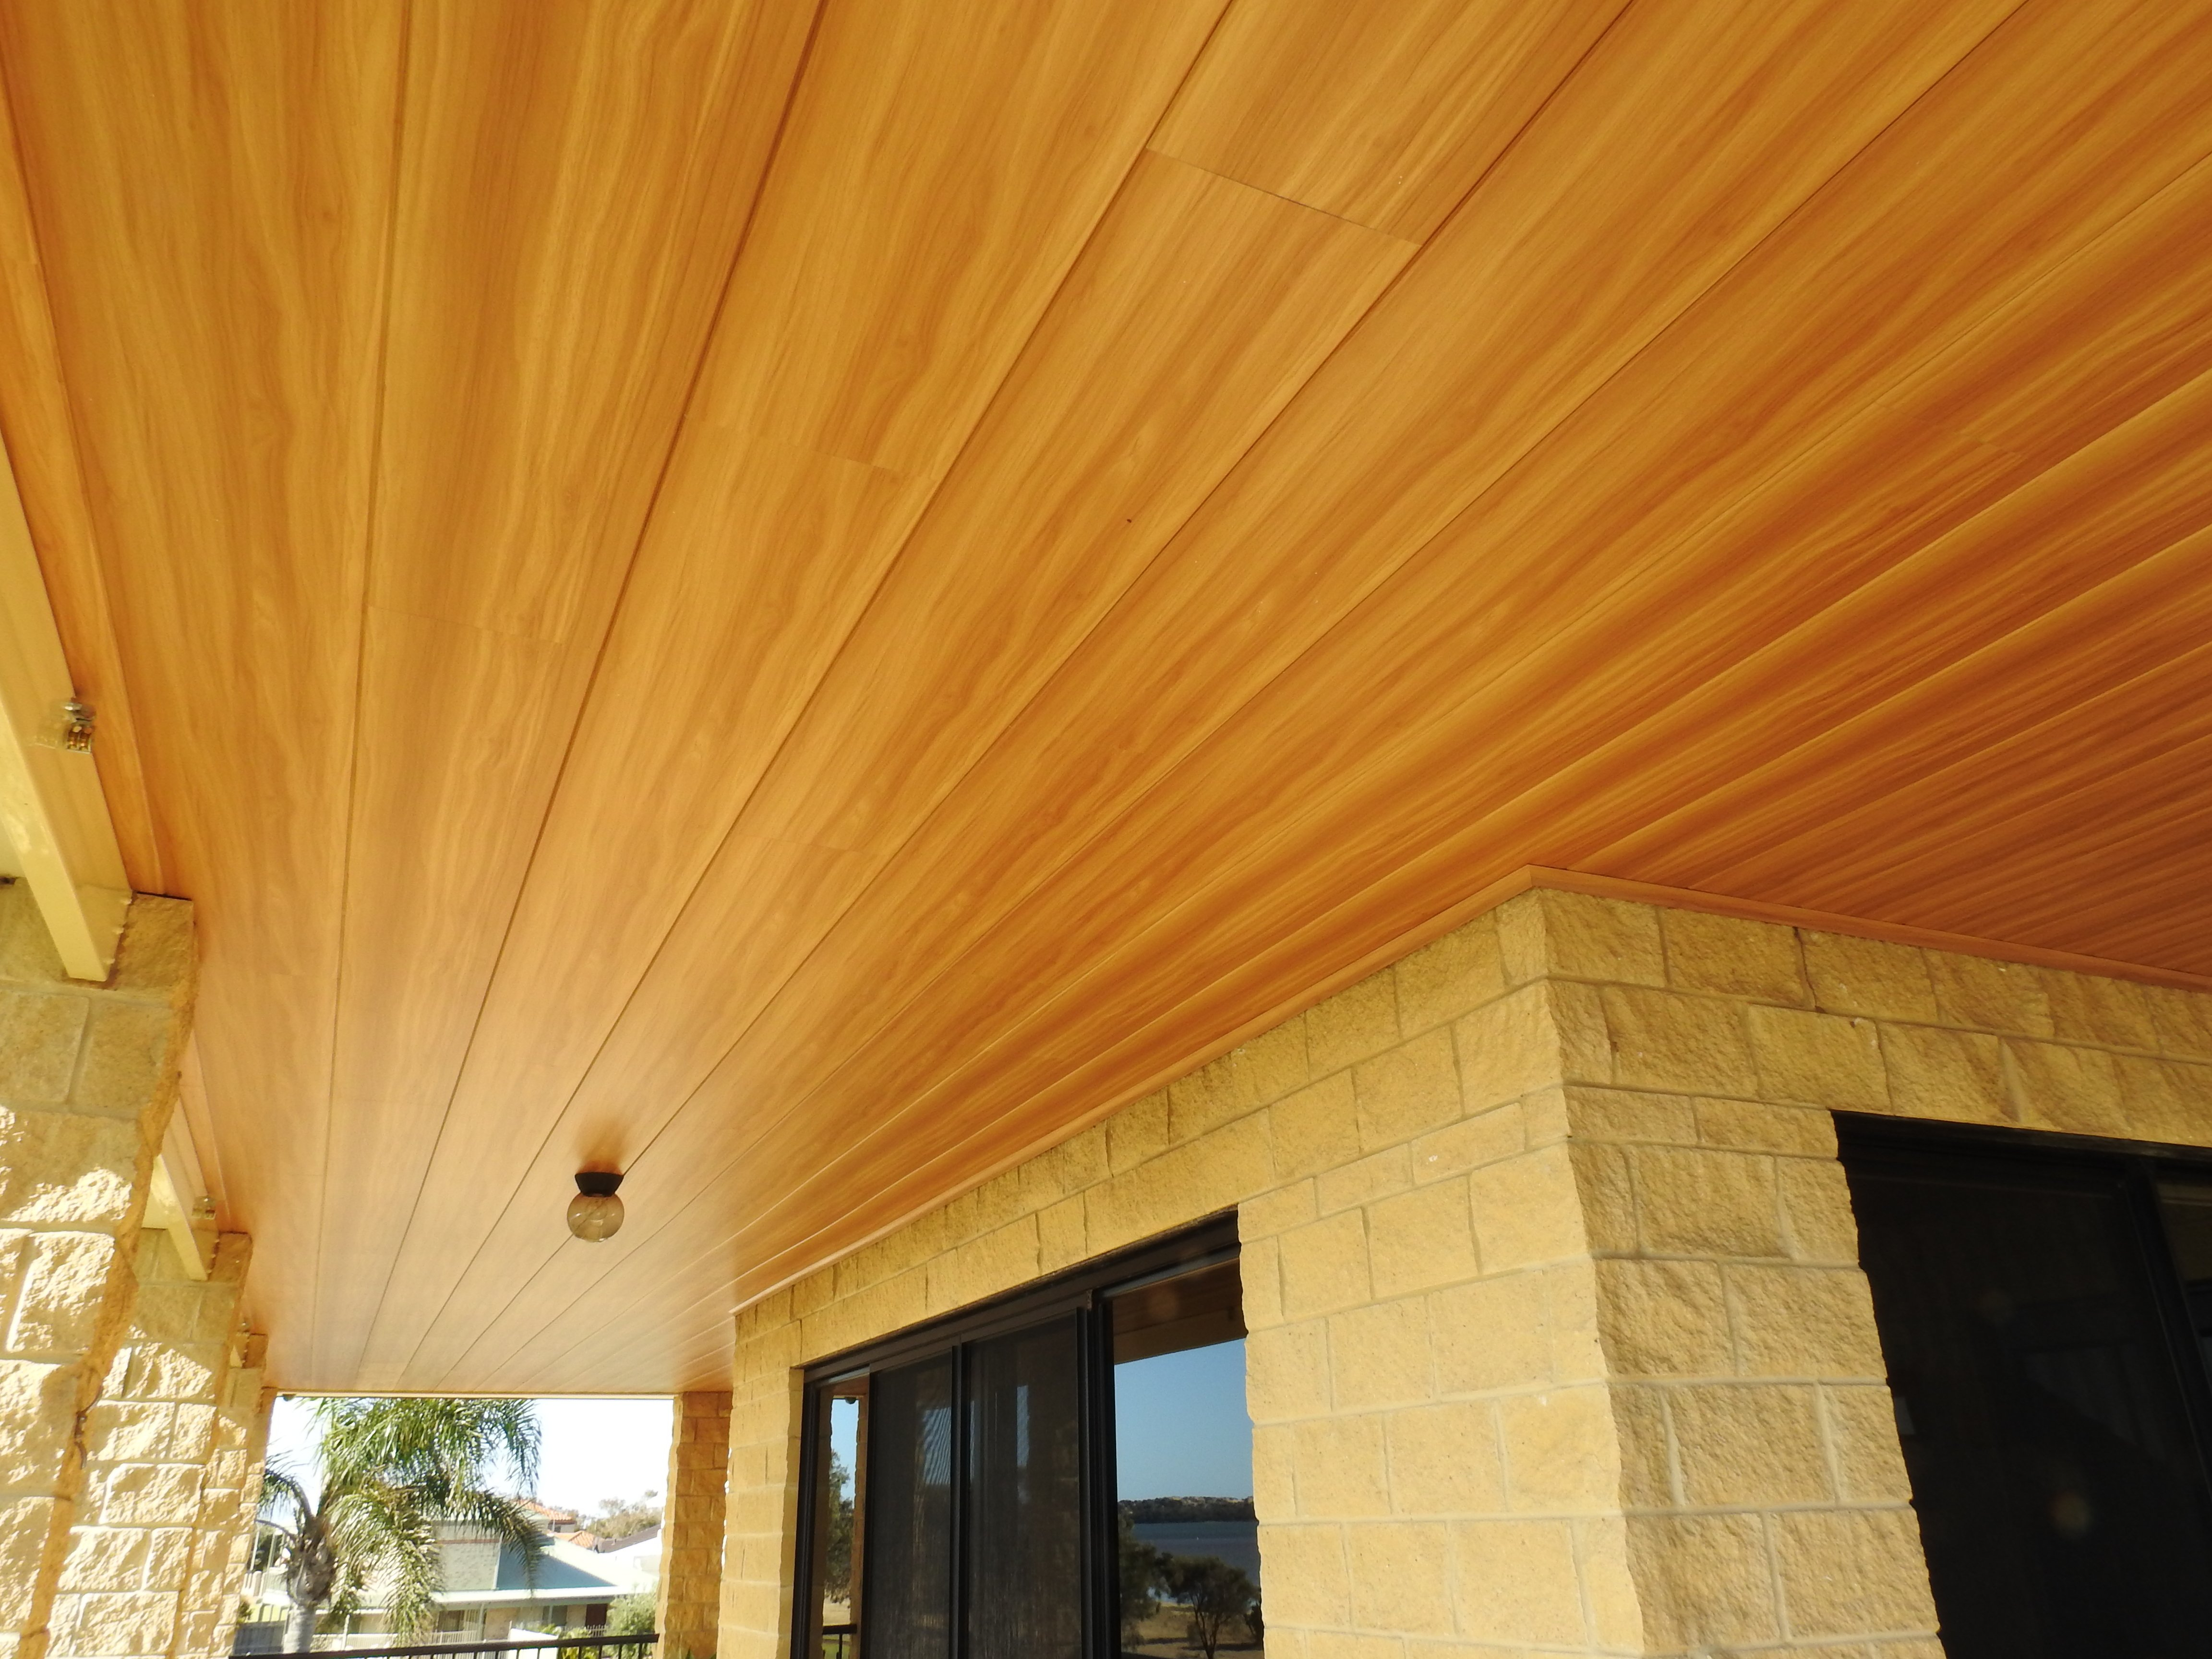 Bunnings Eco Deck Perma Timber And Construction Supplies In Perth